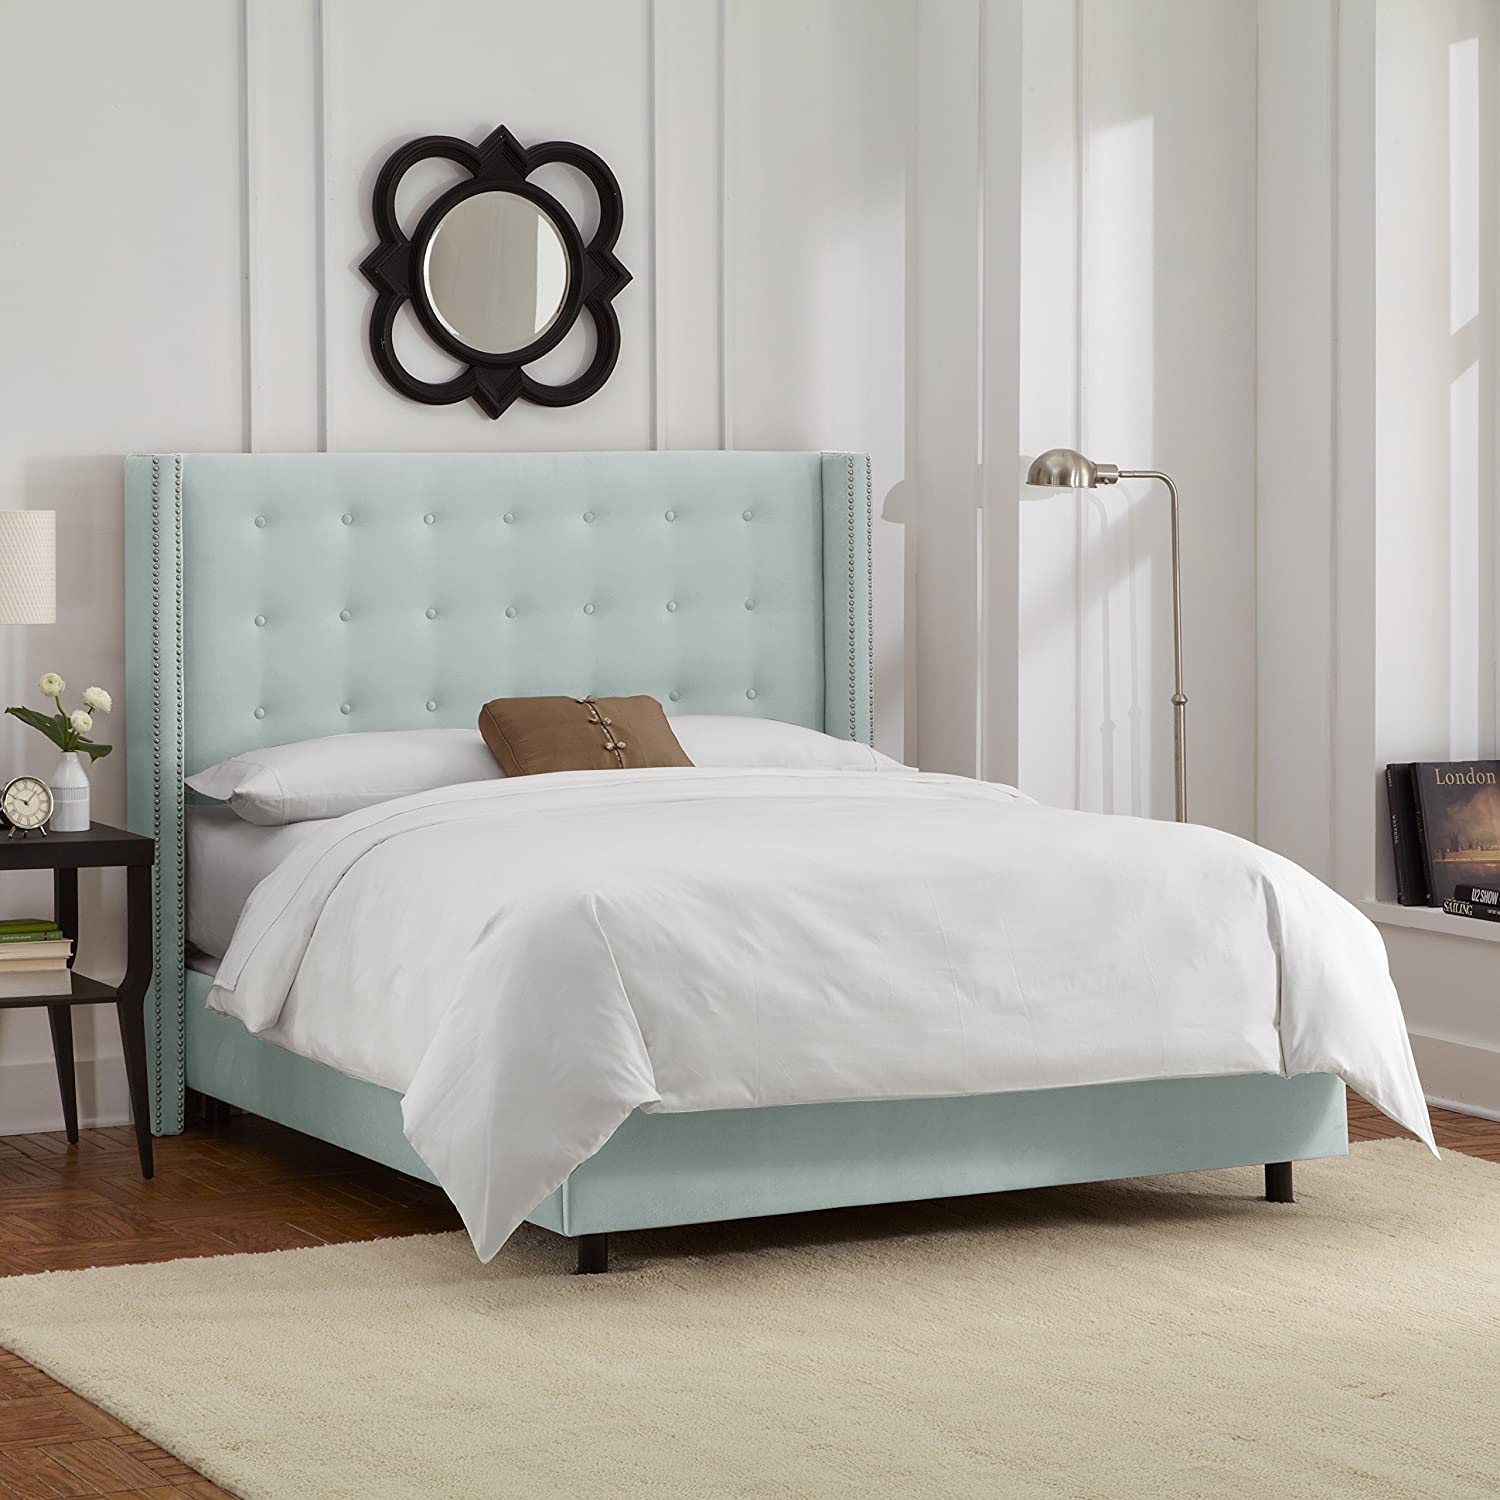 tufted bedroom furniture. Amazon.com: Skyline Furniture Nail Button Tufted Wingback King Bed In Velvet Pool: Kitchen \u0026 Dining Bedroom G